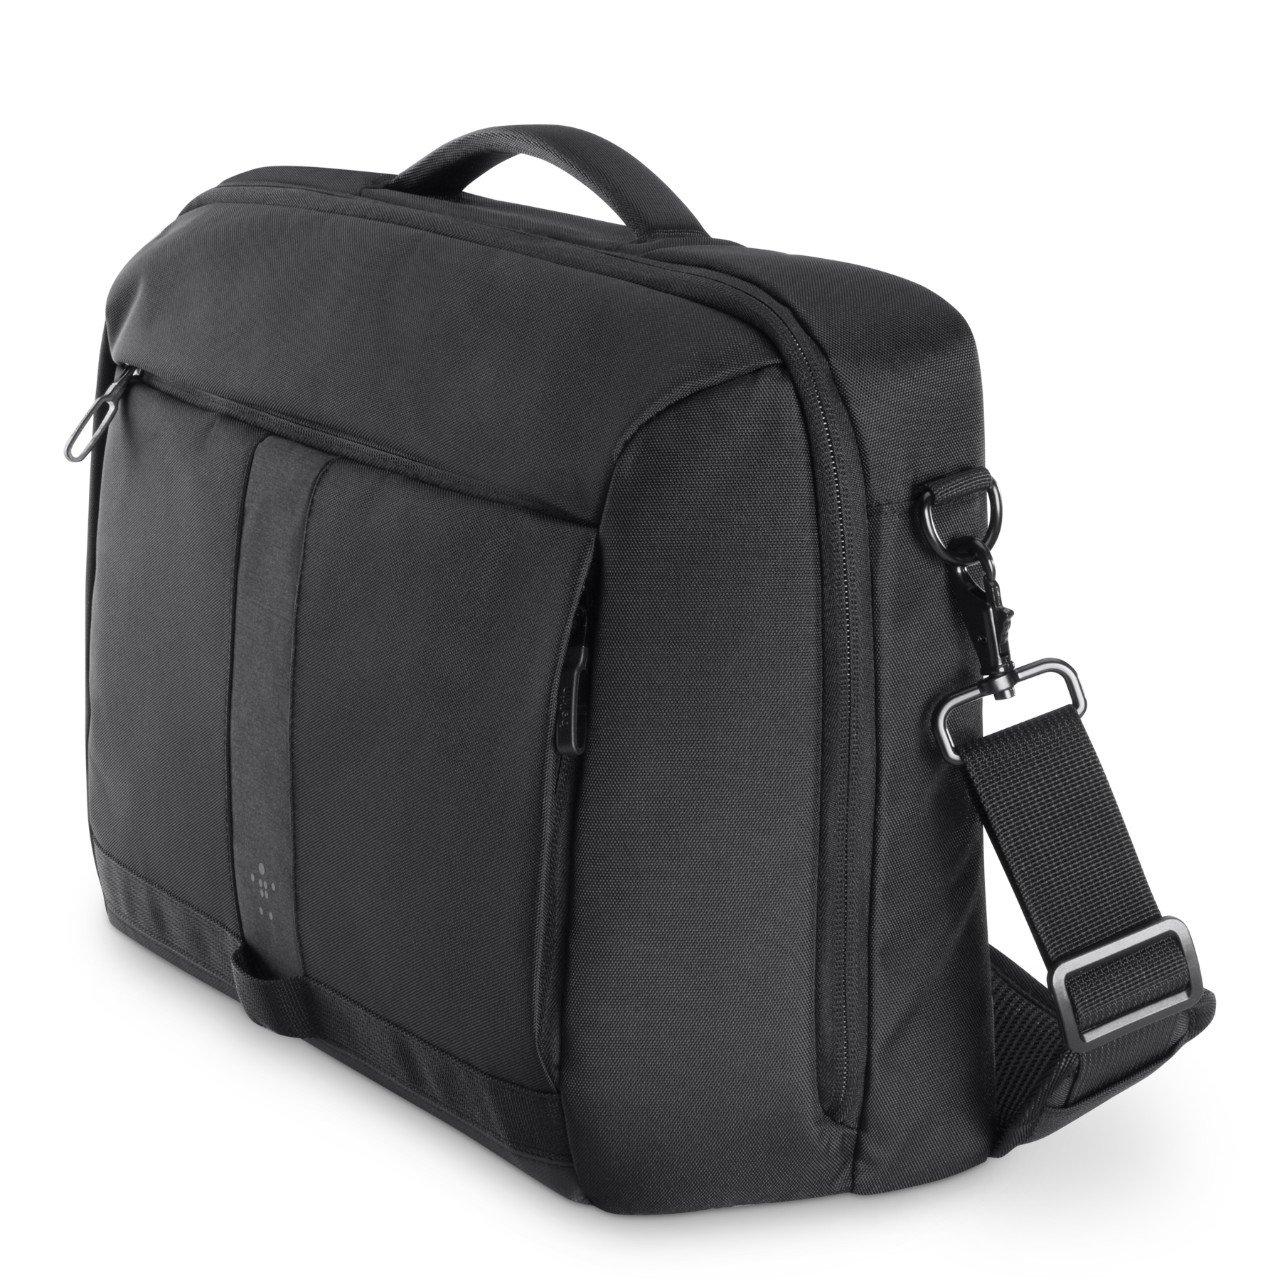 "Belkin Classic Pro Messenger Bag Laptops up to 15.6"" Belkin Components F8N901btBLK"